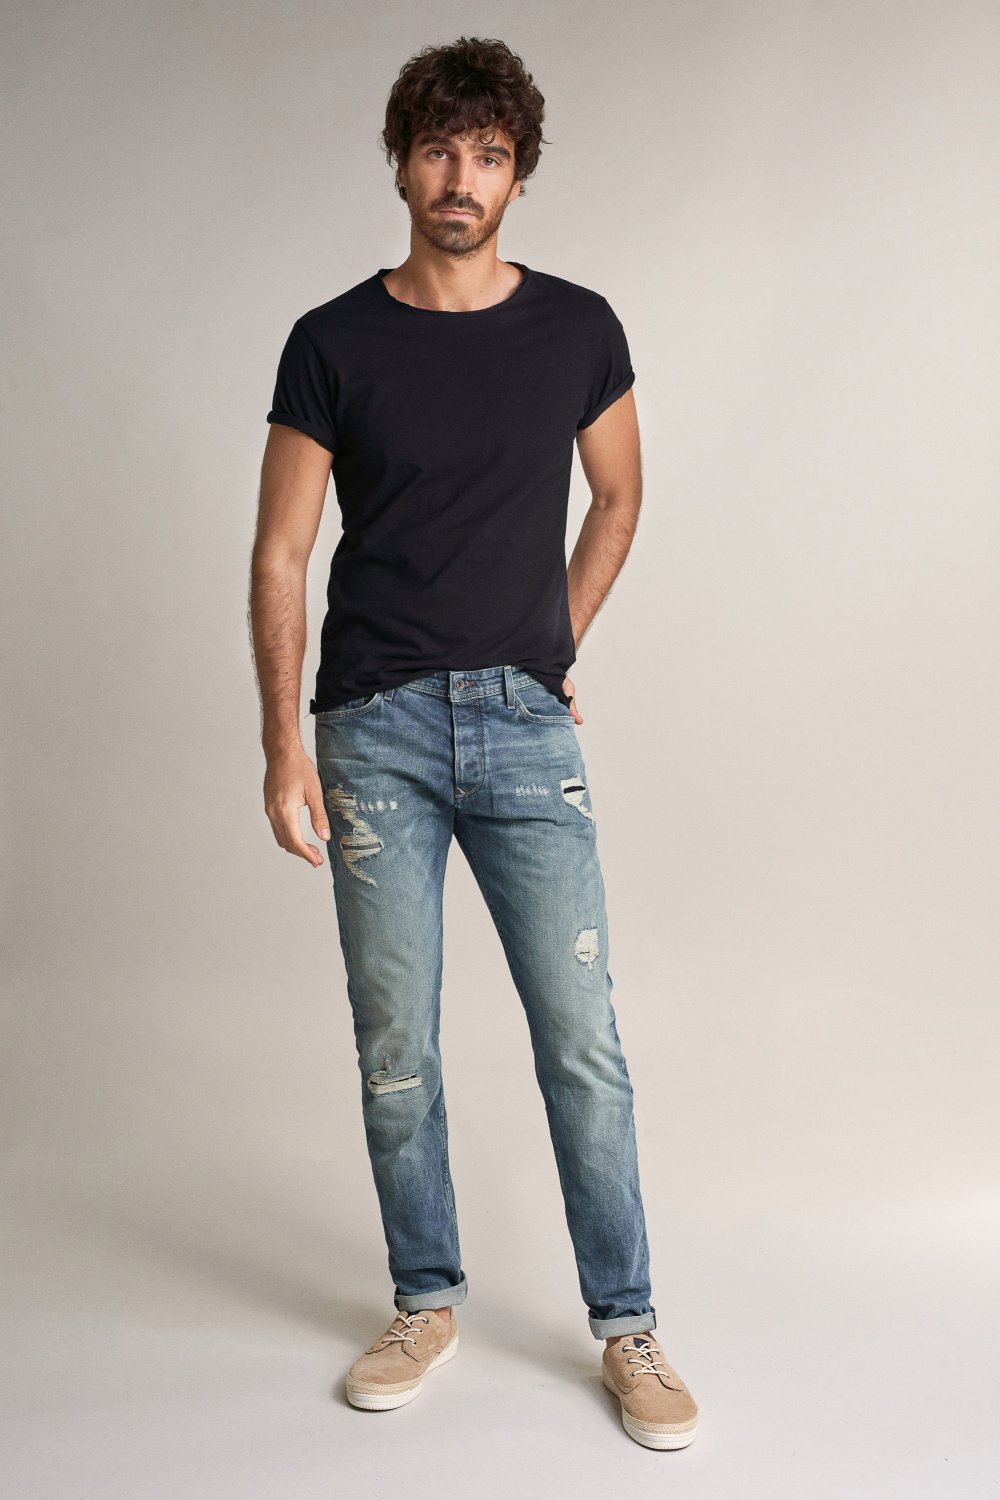 Jeans slender slim carrot ready to go com rotos - Salsa